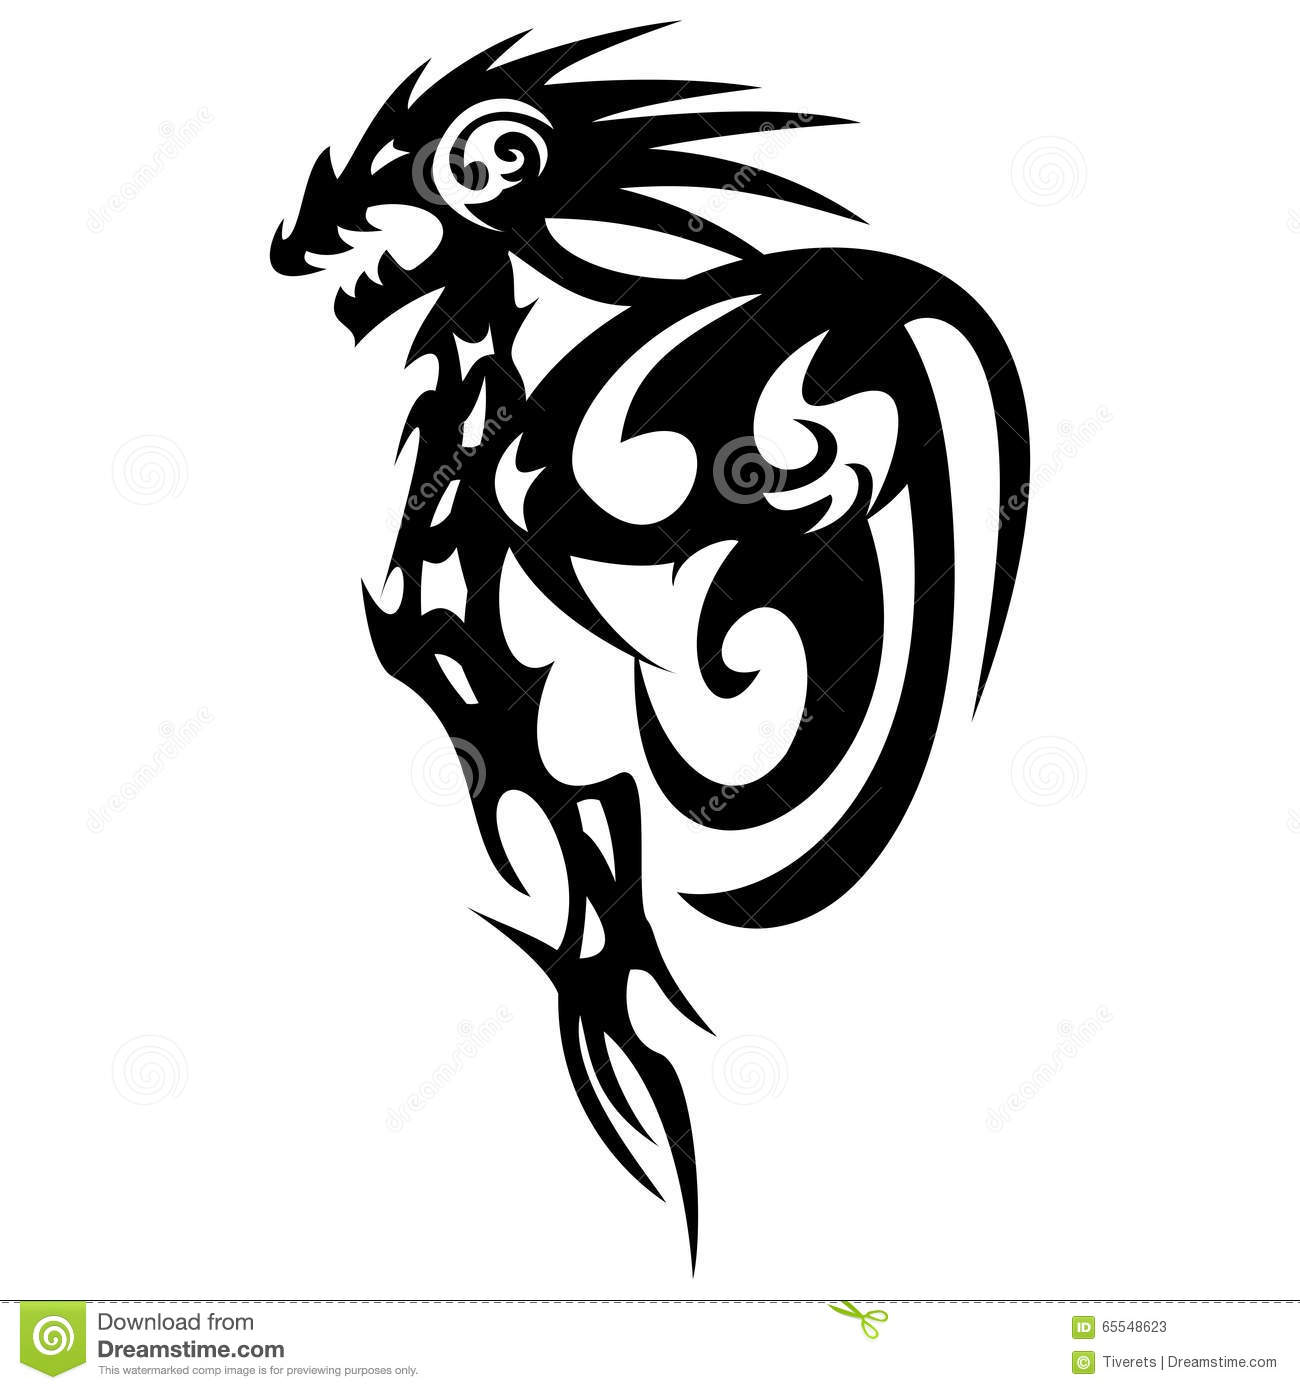 Tattoo Designs White Background: Dragon Tattoo Design, Vintage Illustration. Stock Vector